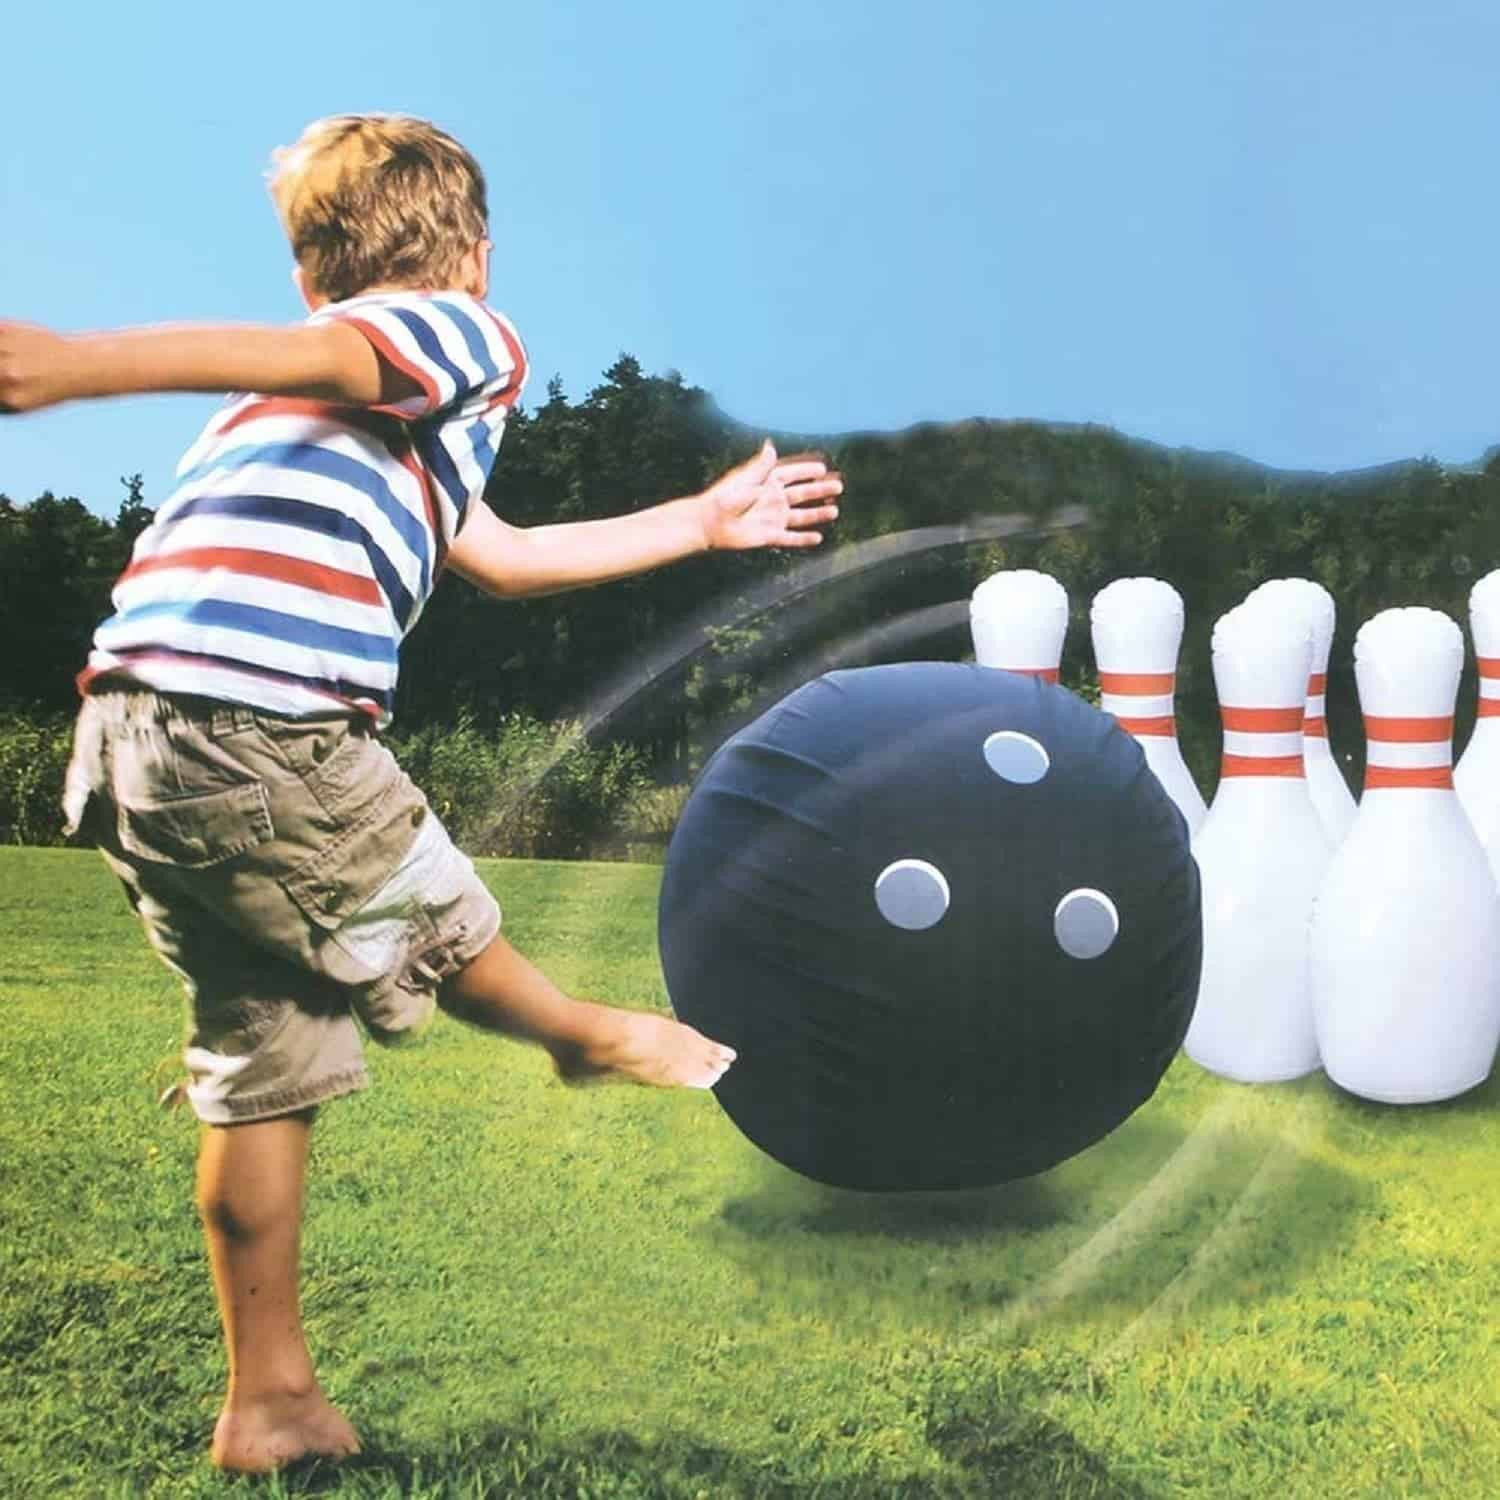 Funny Backyard Games  10 Crazy Fun Outdoor Games Perfect for a Backyard Barbecue